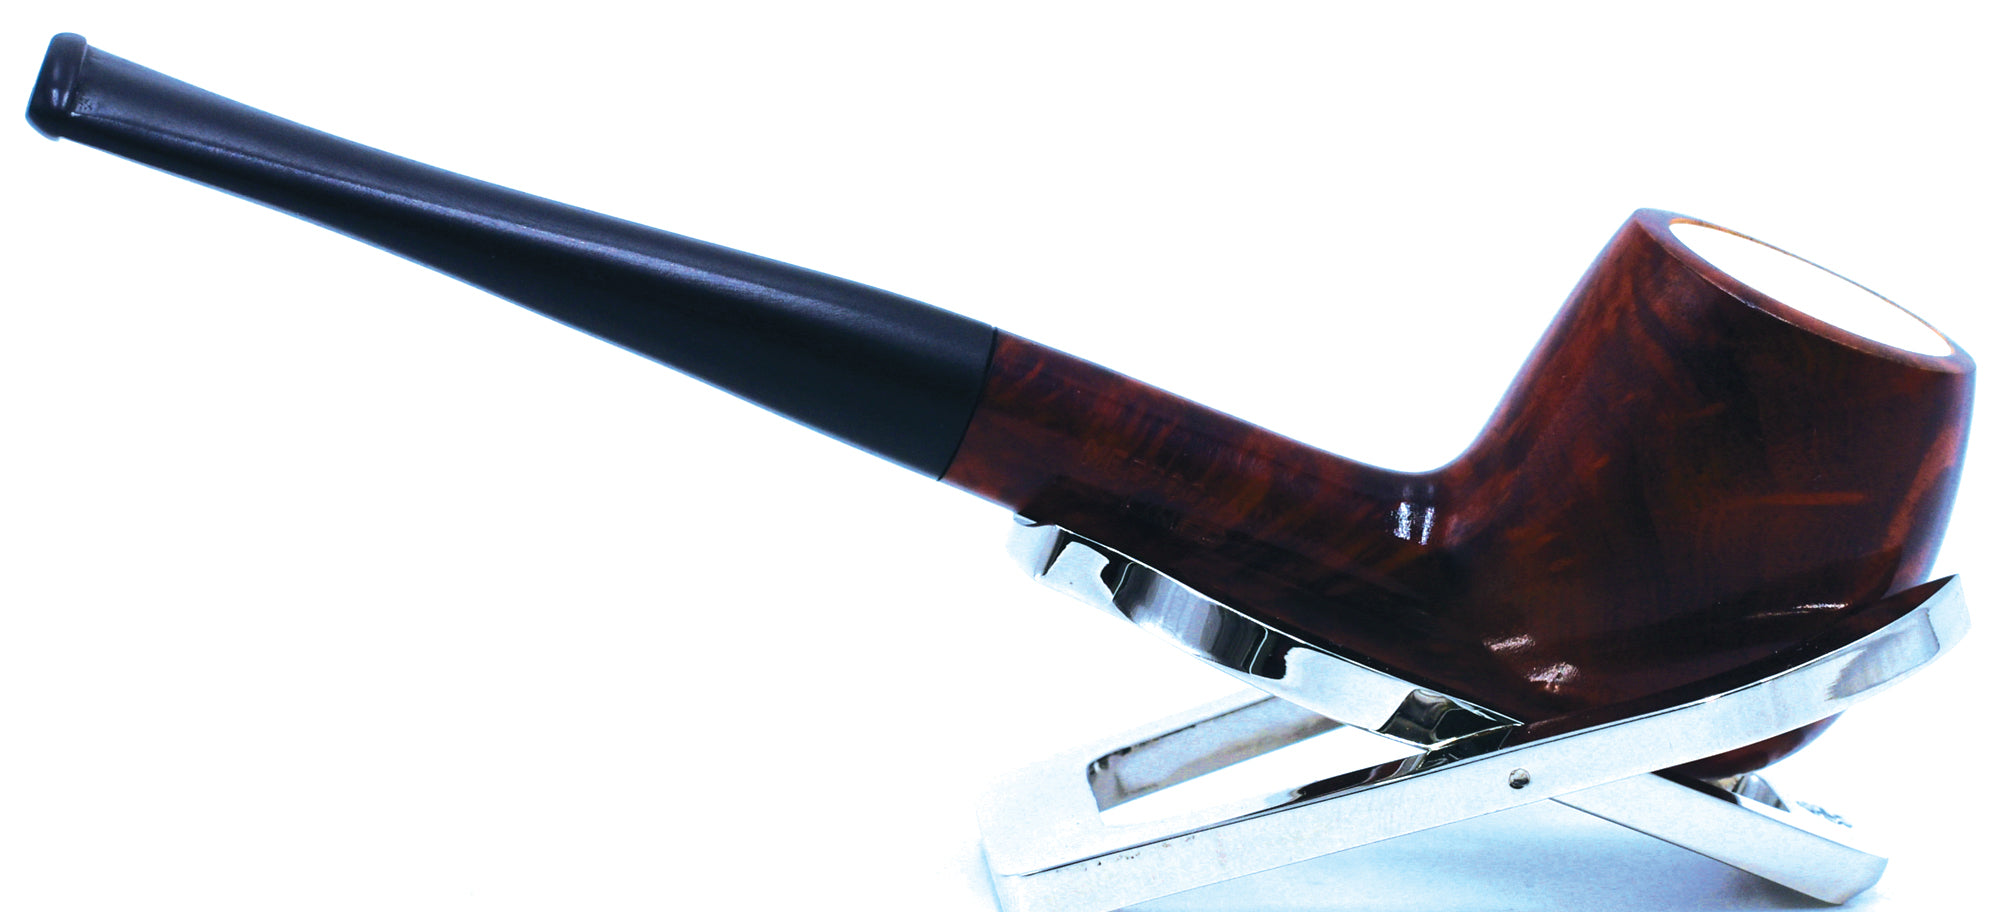 LORENZO® Meerschaum-lined Briar Smoking Pipe Made by Mediterranean Meerschaum and Briar In Italy 01-03-400